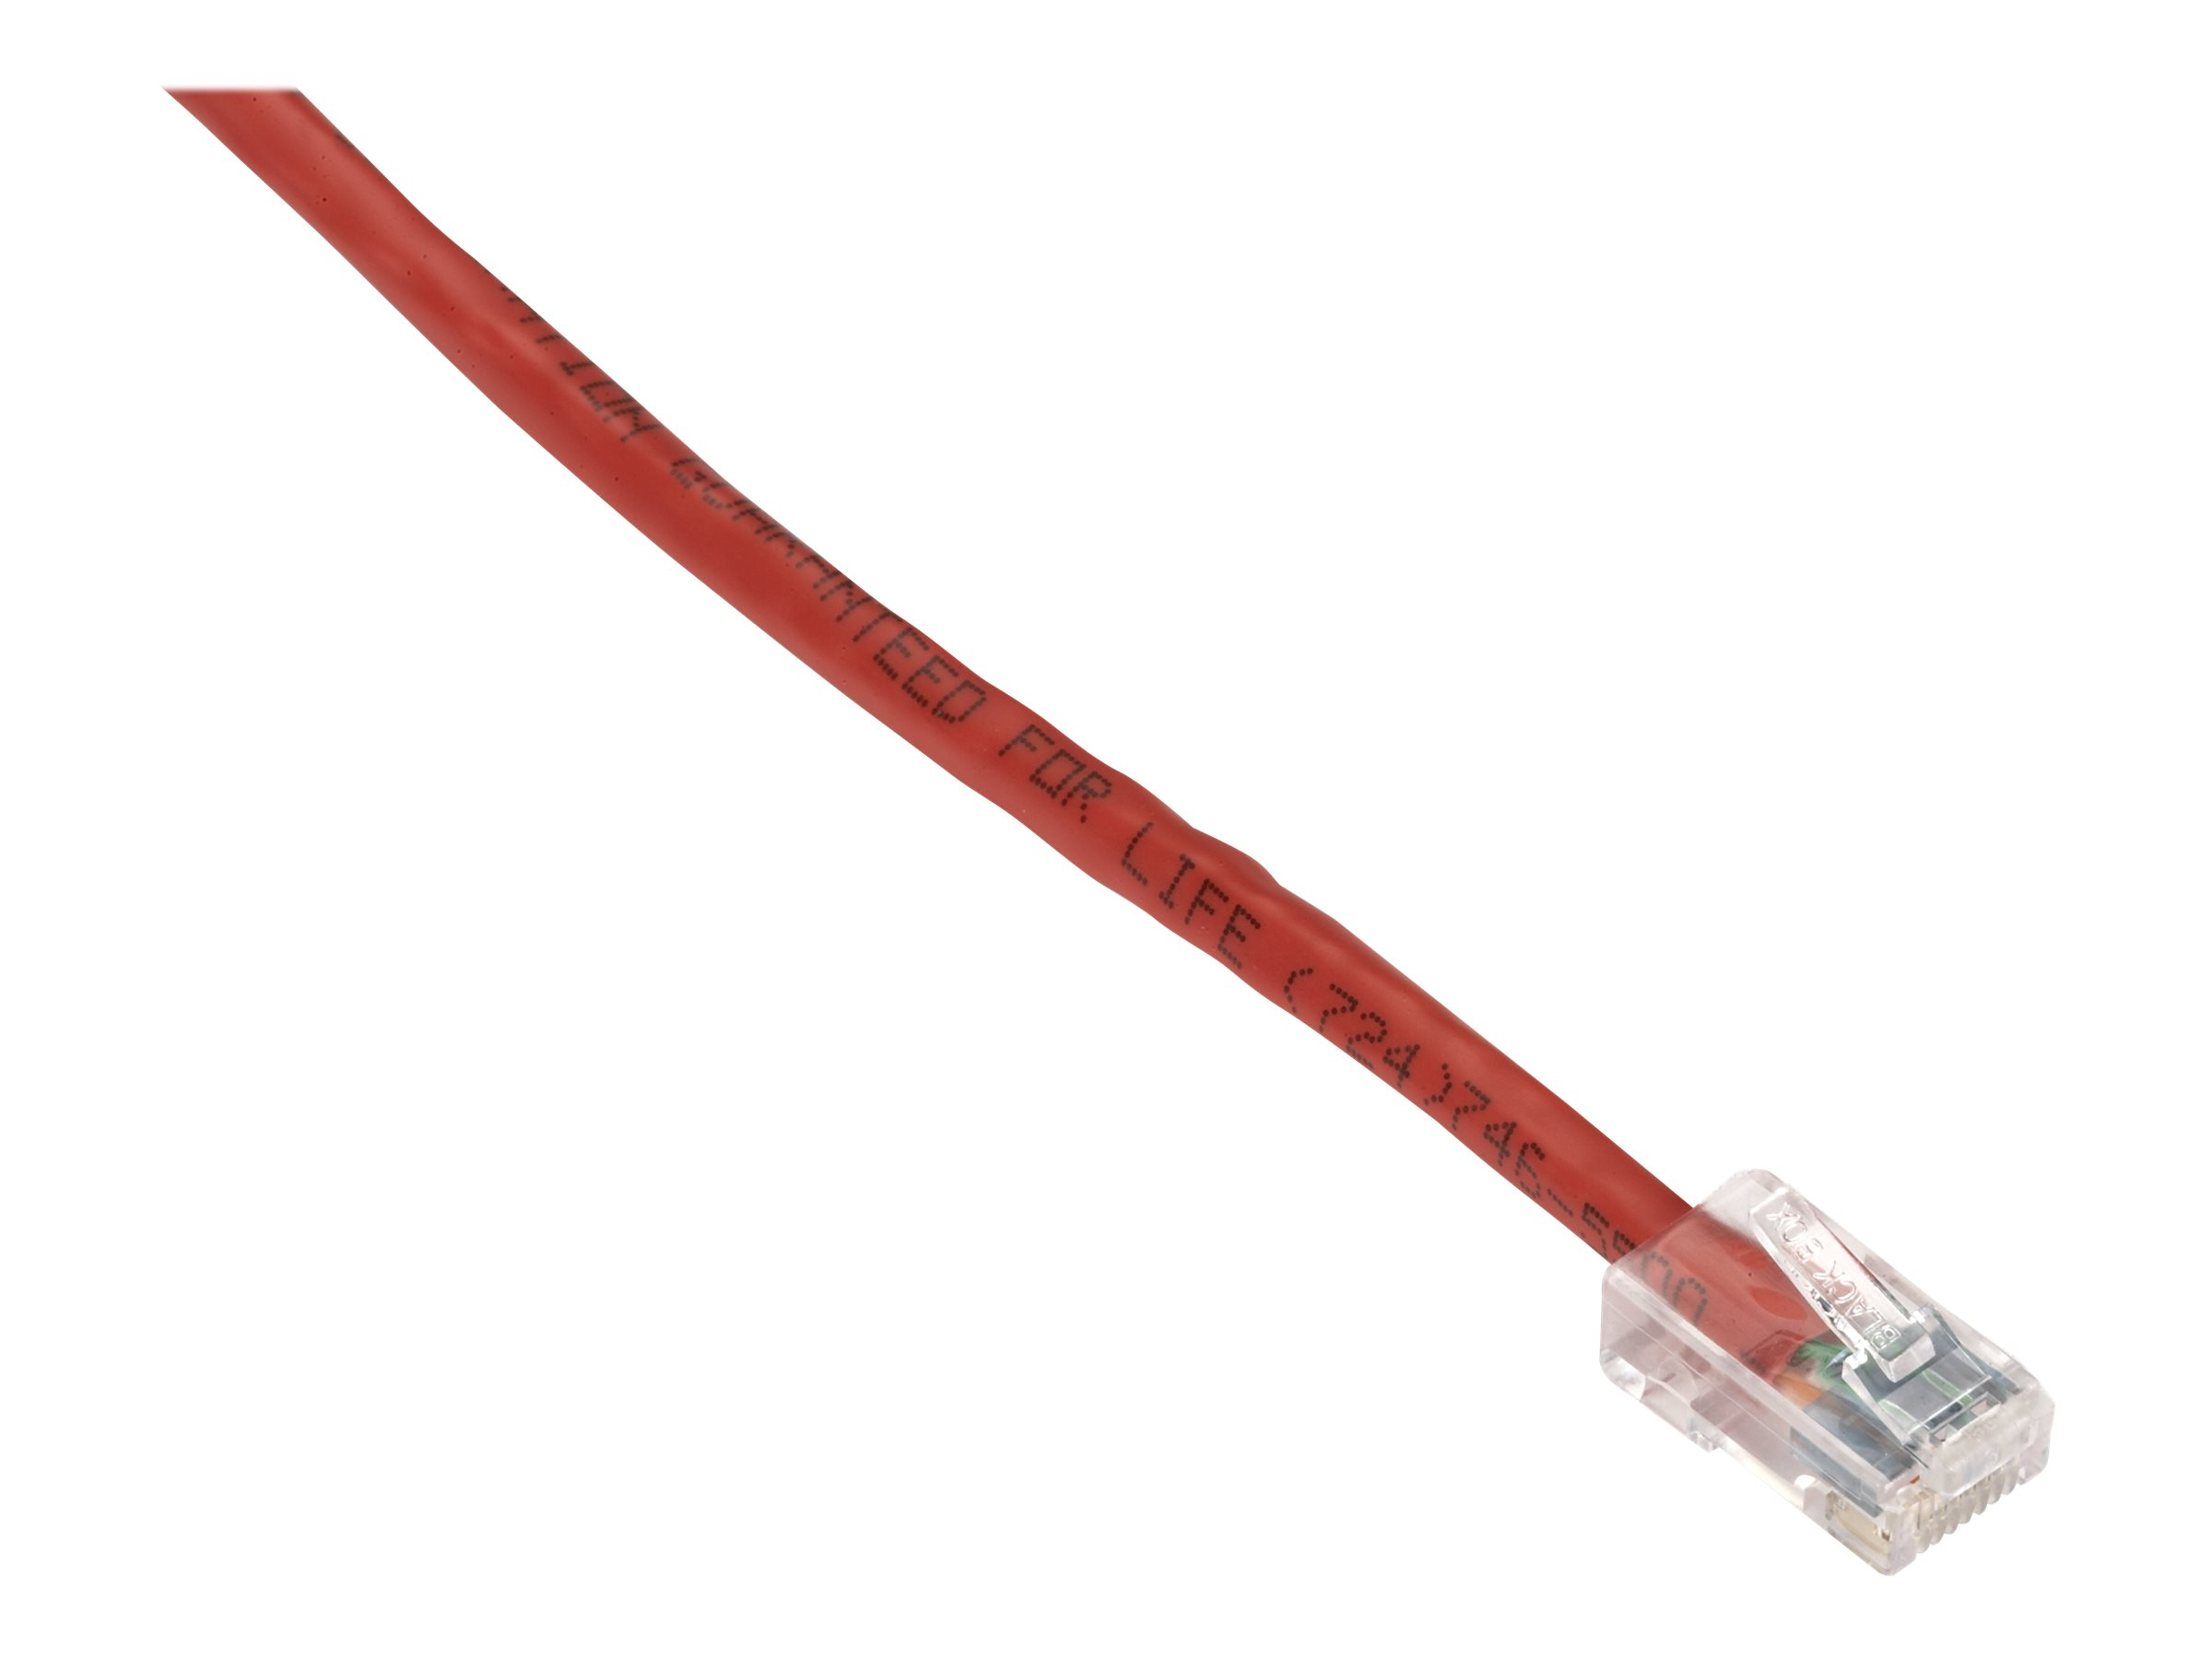 Black Box GigaTrue CAT6 Channel 550-MHz Patch Cable with Basic Connector - patch cable - 3 m - red